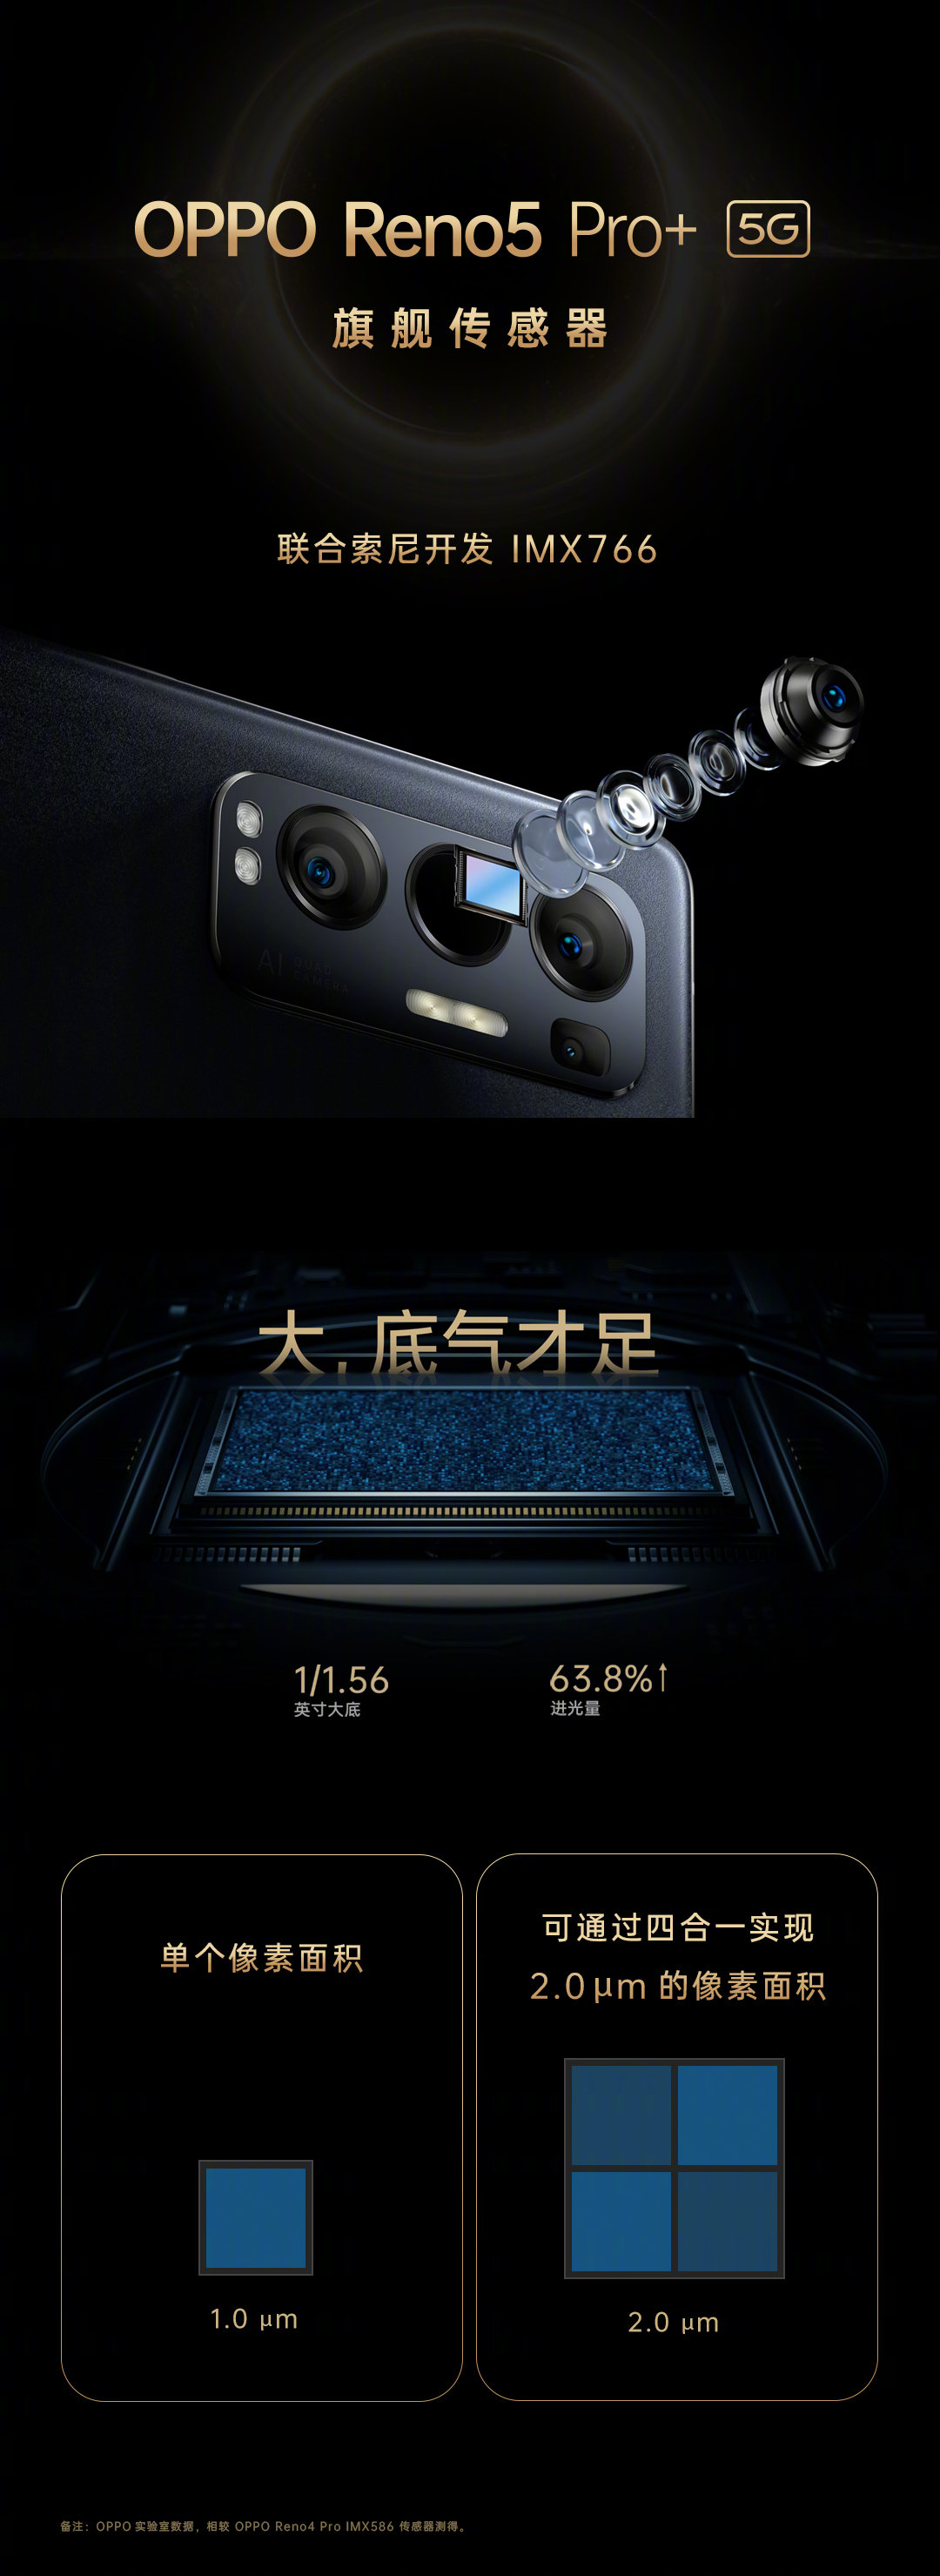 Oppo Reno5 Pro+ Camera, Sony IMX766 Specifications